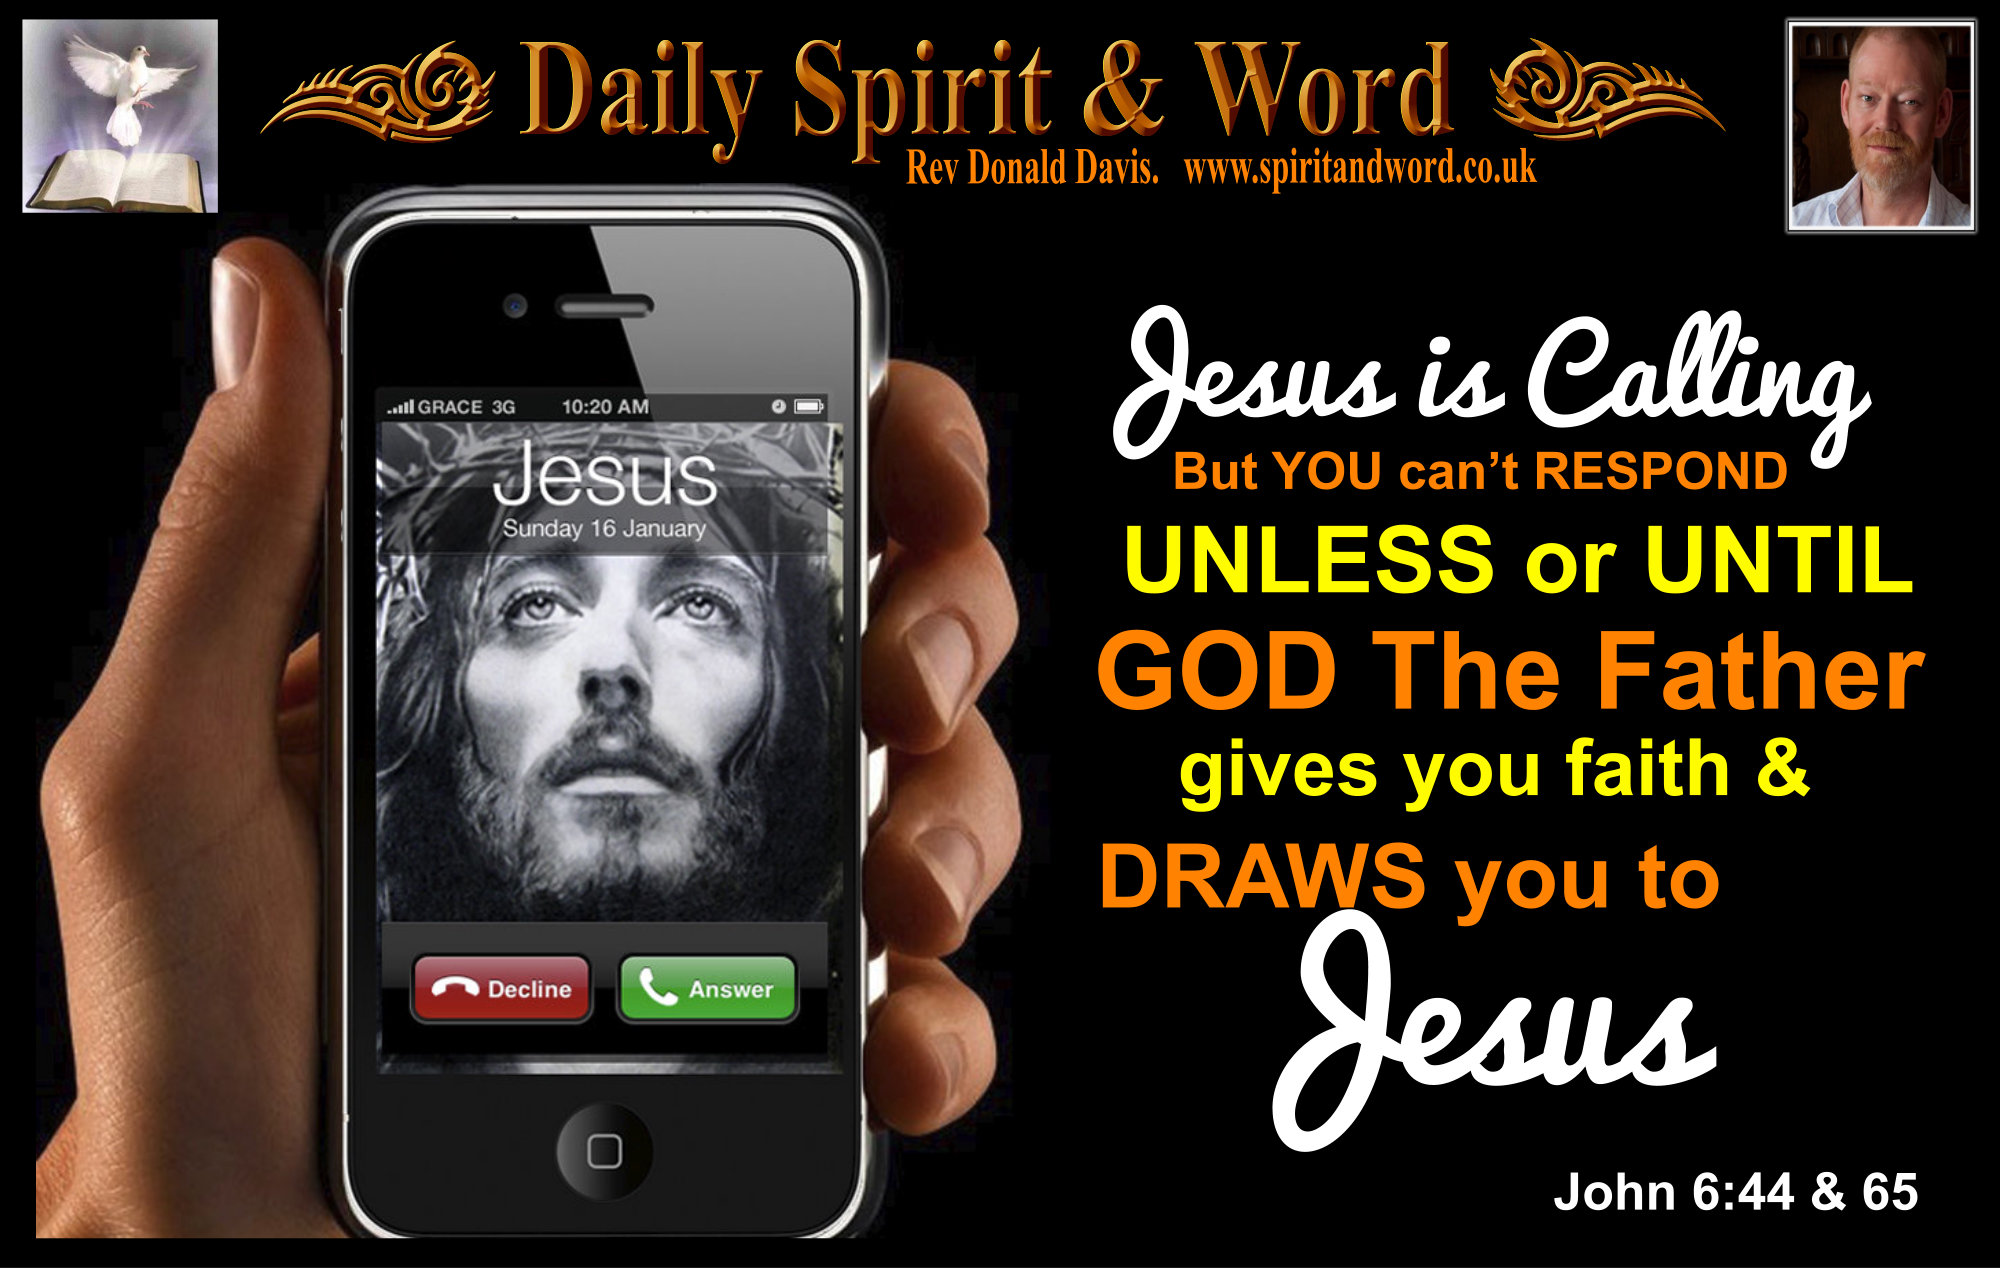 The New Birth by God's Holy Spirit. We're drawn to Jesus by Father God